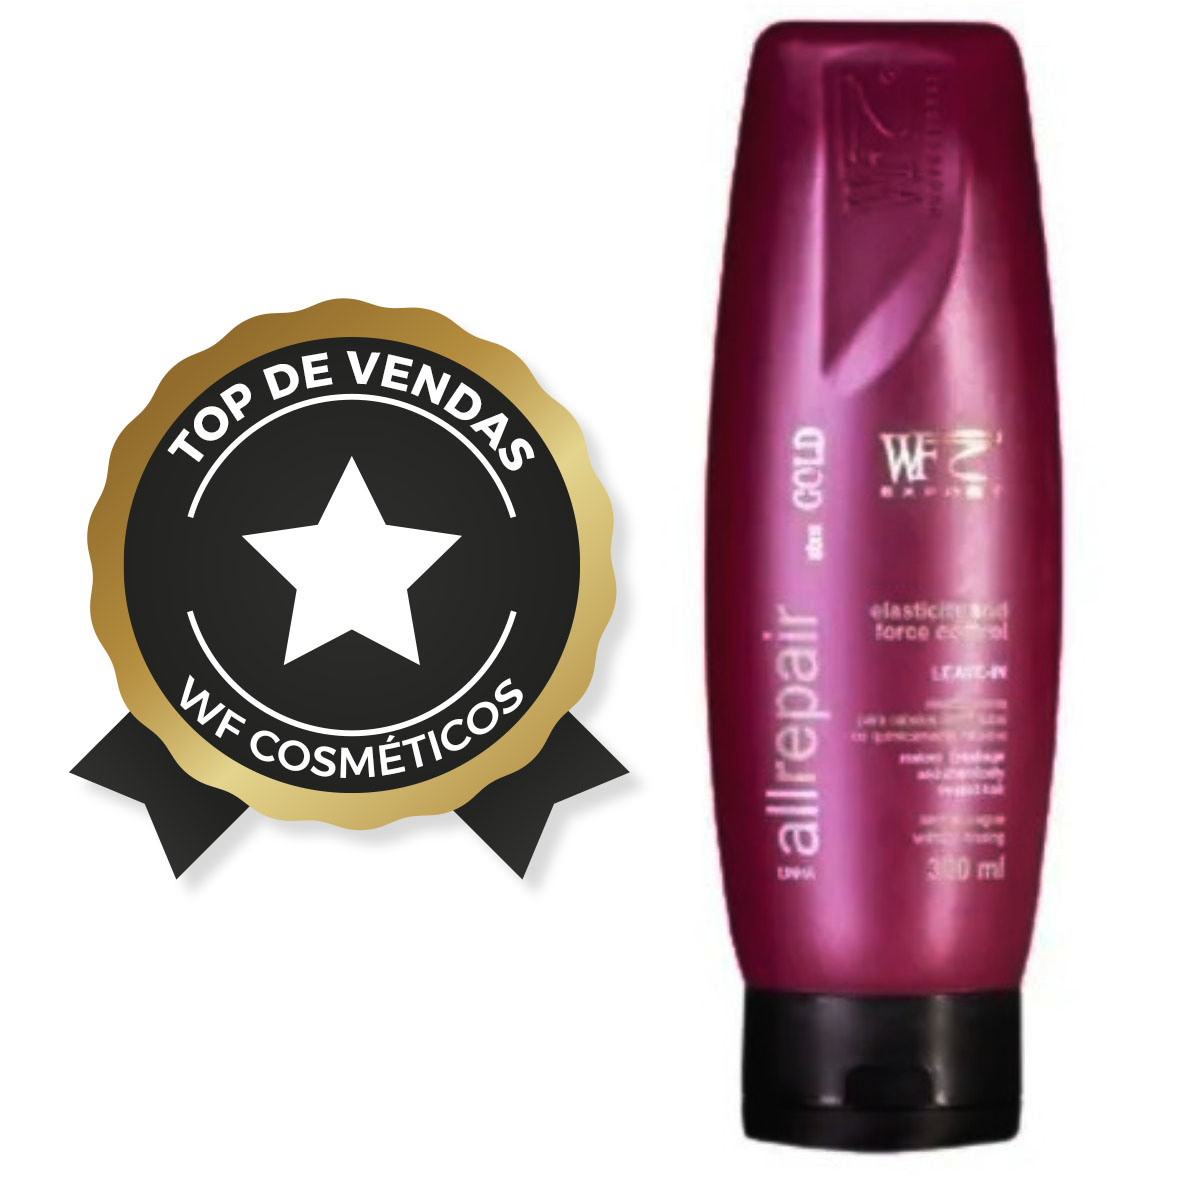 ALL REPAIR - LEAVE-IN ELASTICITY FORCE CONTROL WF COSMETICOS 300ML